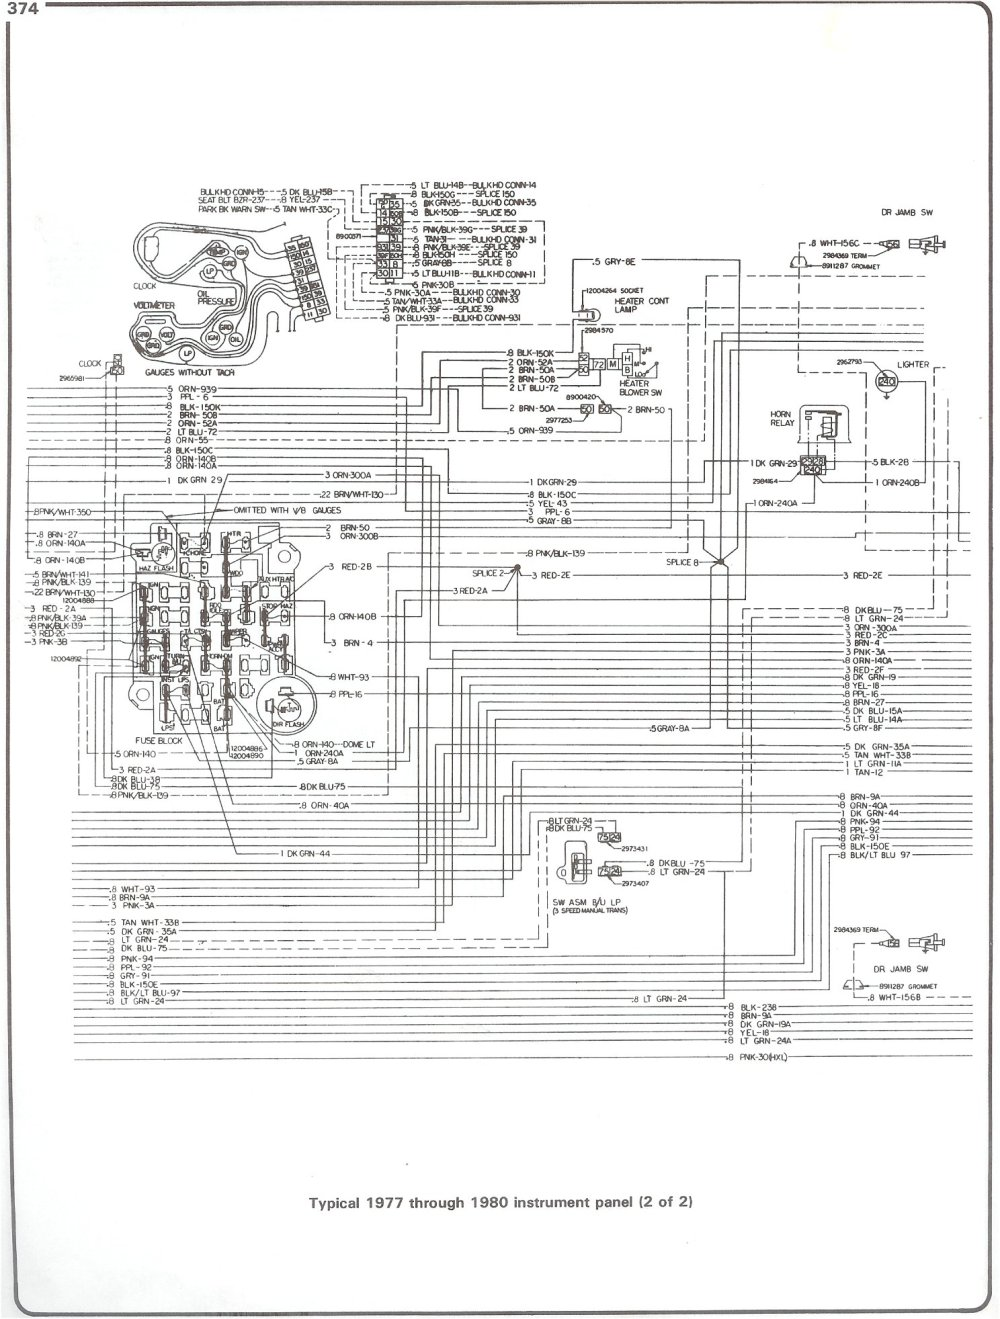 medium resolution of wrg 3991 wiring diagram 83 chevy truck chevrolet truck schematics